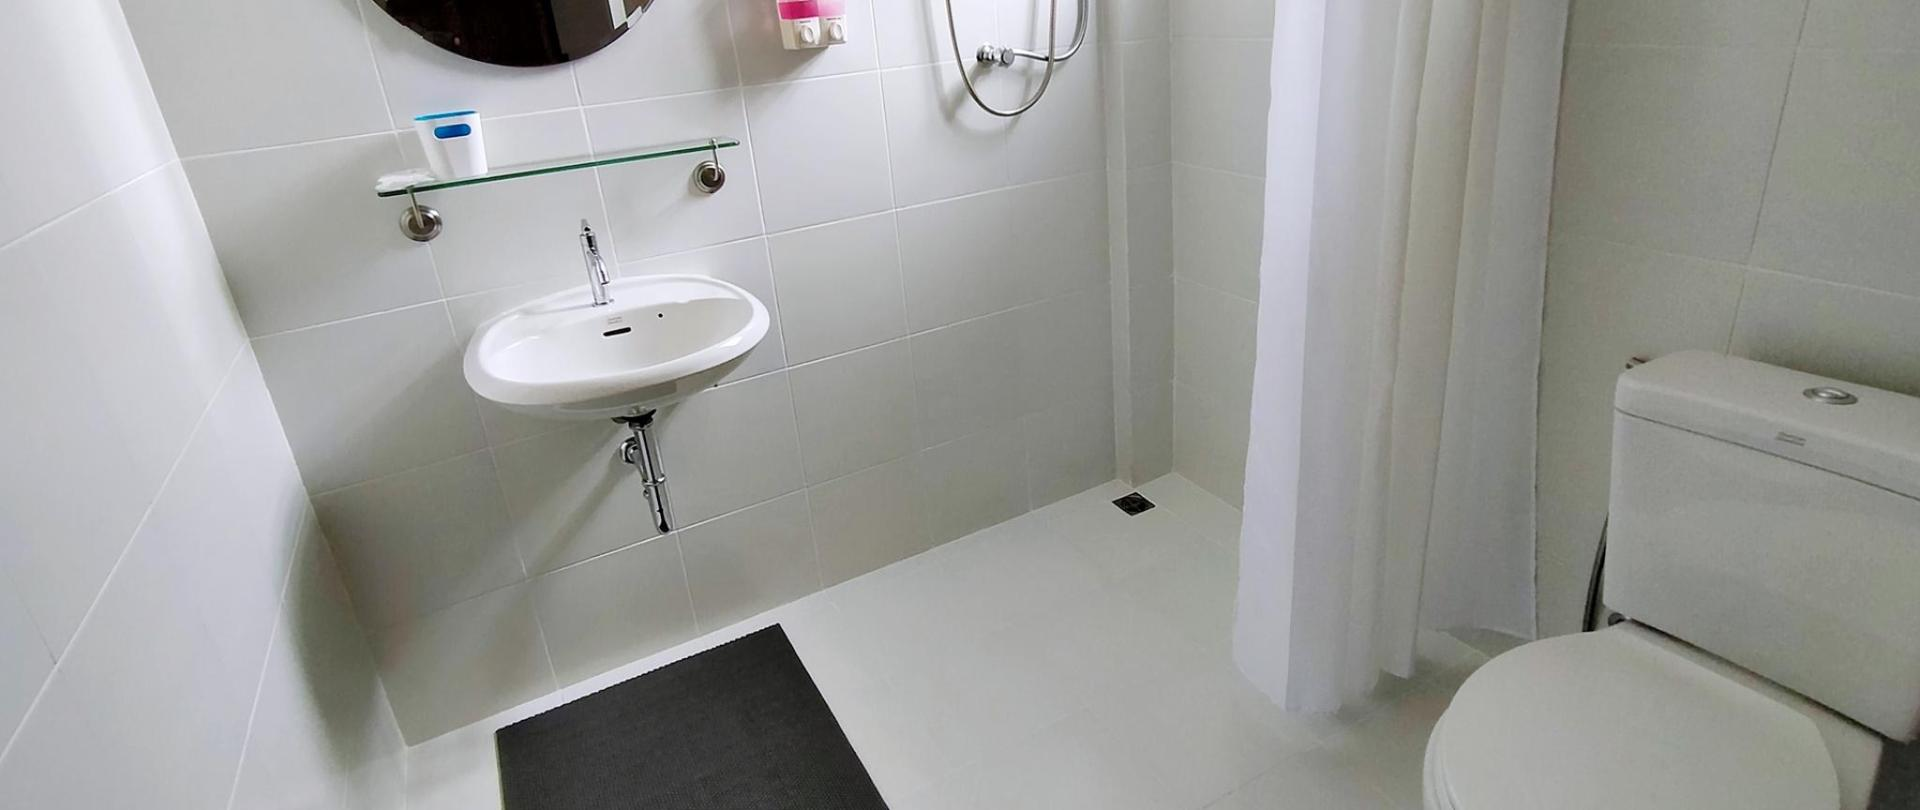 Bath-room-toilet-wet-floor-anti-slip-I-Ya-Guesthouse-Phayao.jpg